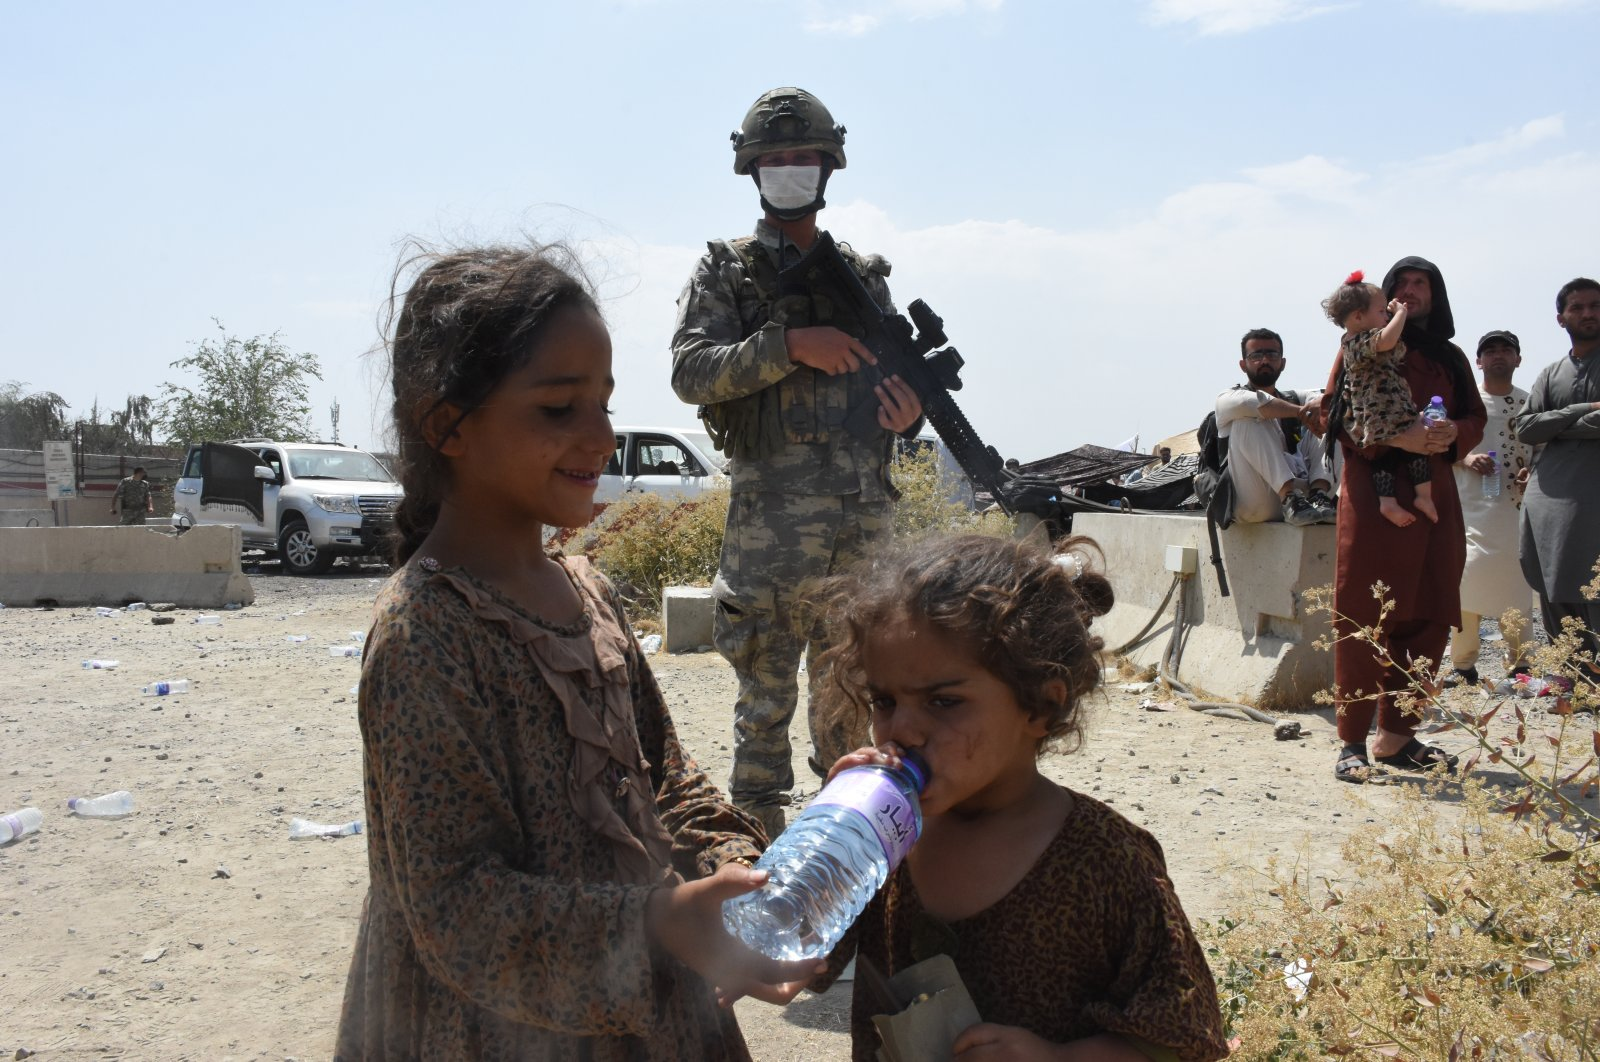 Afghan children drink water provided by Turkish soldiers near Kabul Hamid Karzai International Airport, Afghanistan, Aug. 22, 2021. (AA Photo)